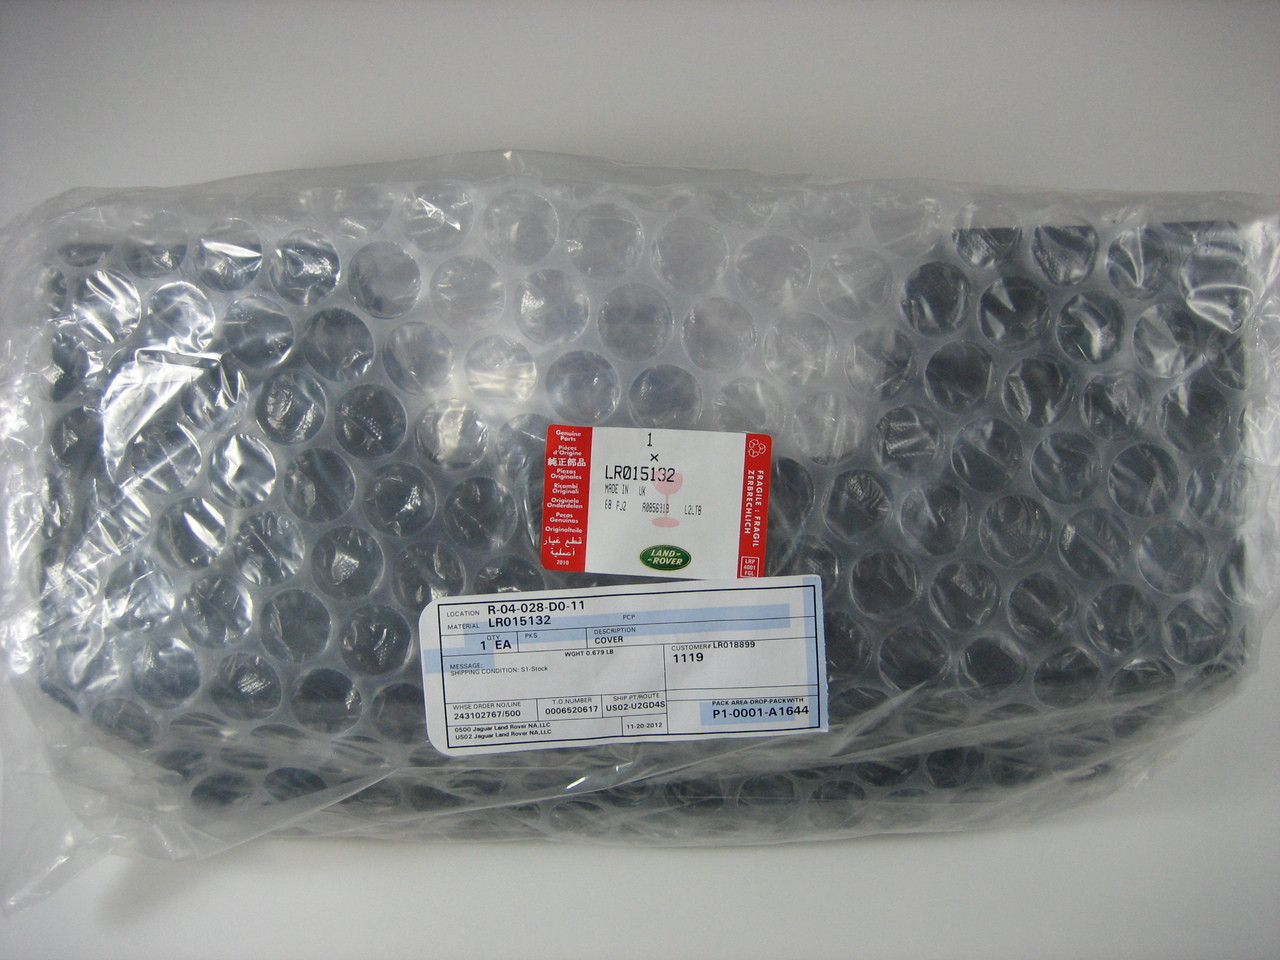 Towing Eye Cover - LR015132